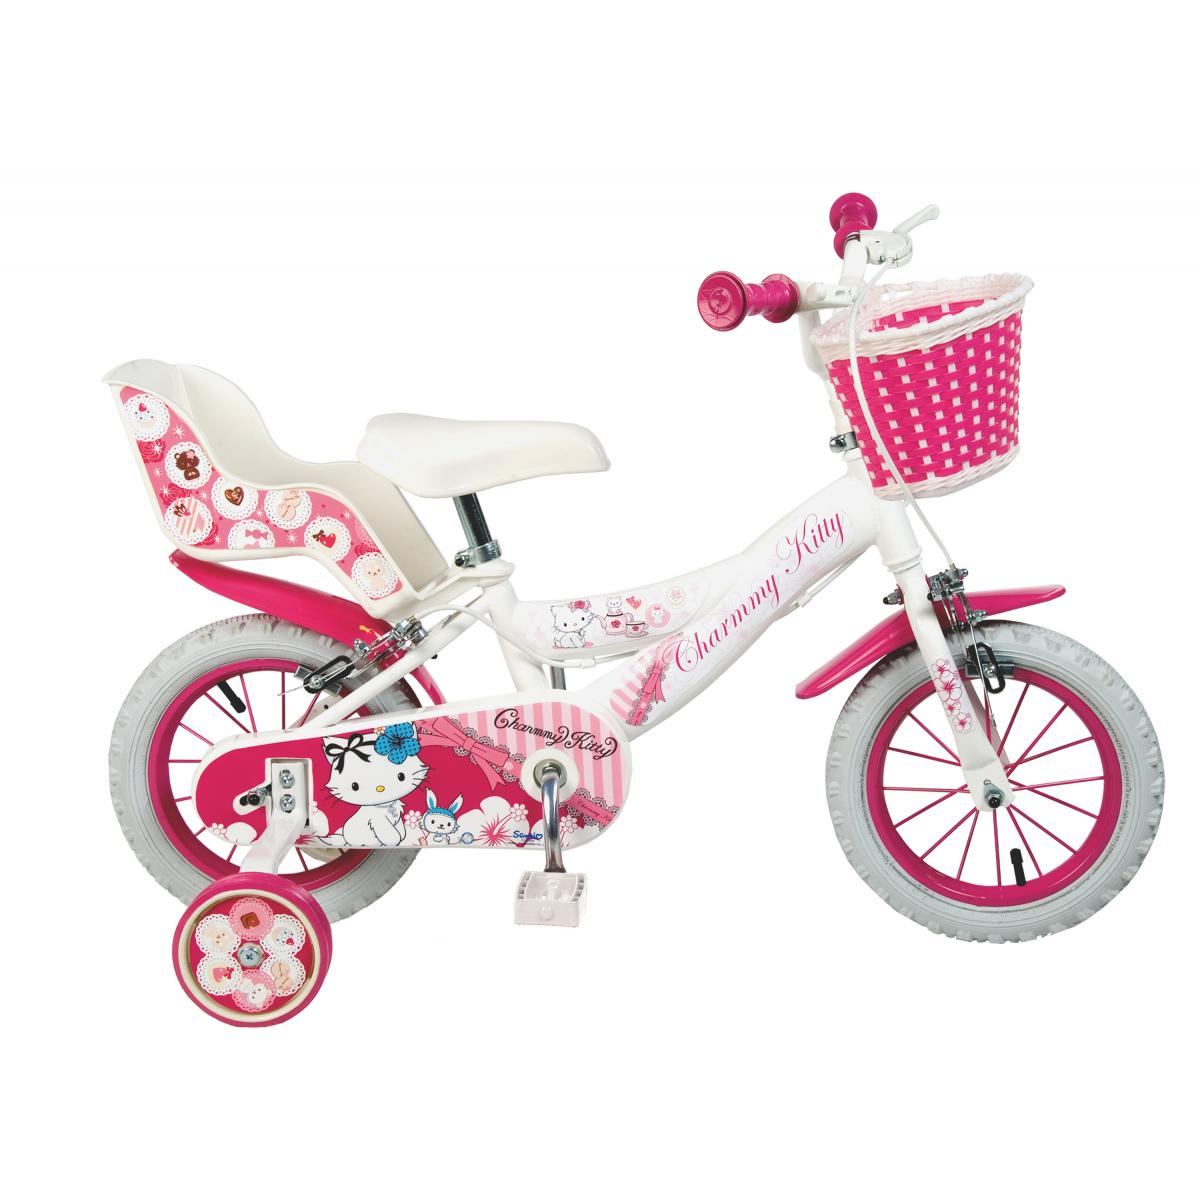 charmmy kitty kinderfahrrad 12 14 16 zoll kinder m dchen. Black Bedroom Furniture Sets. Home Design Ideas